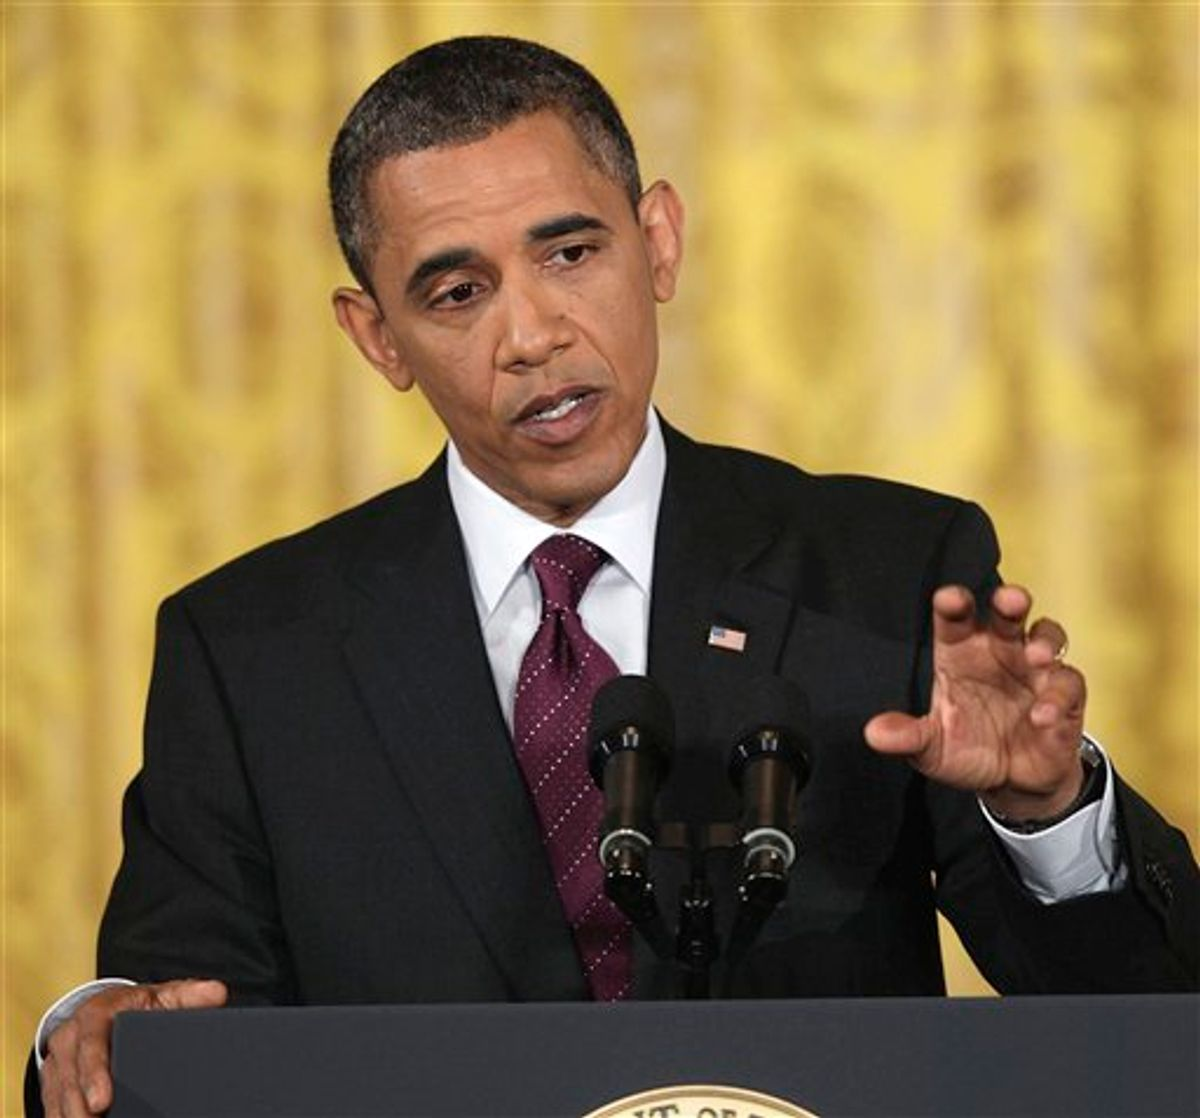 President Barack Obama gestures during a news conference in the East Room of the White House in Washington, Wednesday, June 29, 2011. (AP Photo/Carolyn Kaster) (AP)